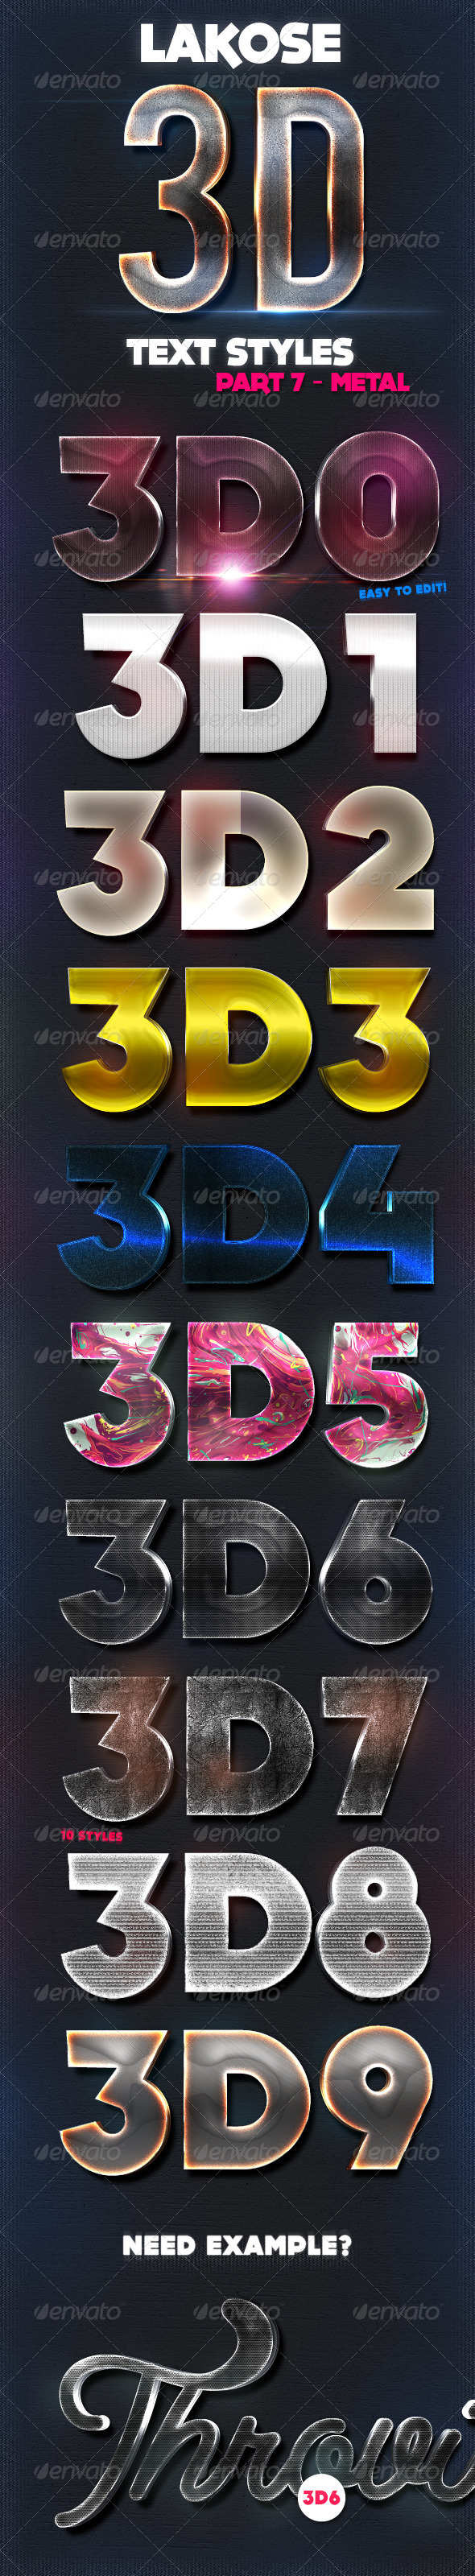 GraphicRiver Lakose 3D Text Styles Part 7 8712661